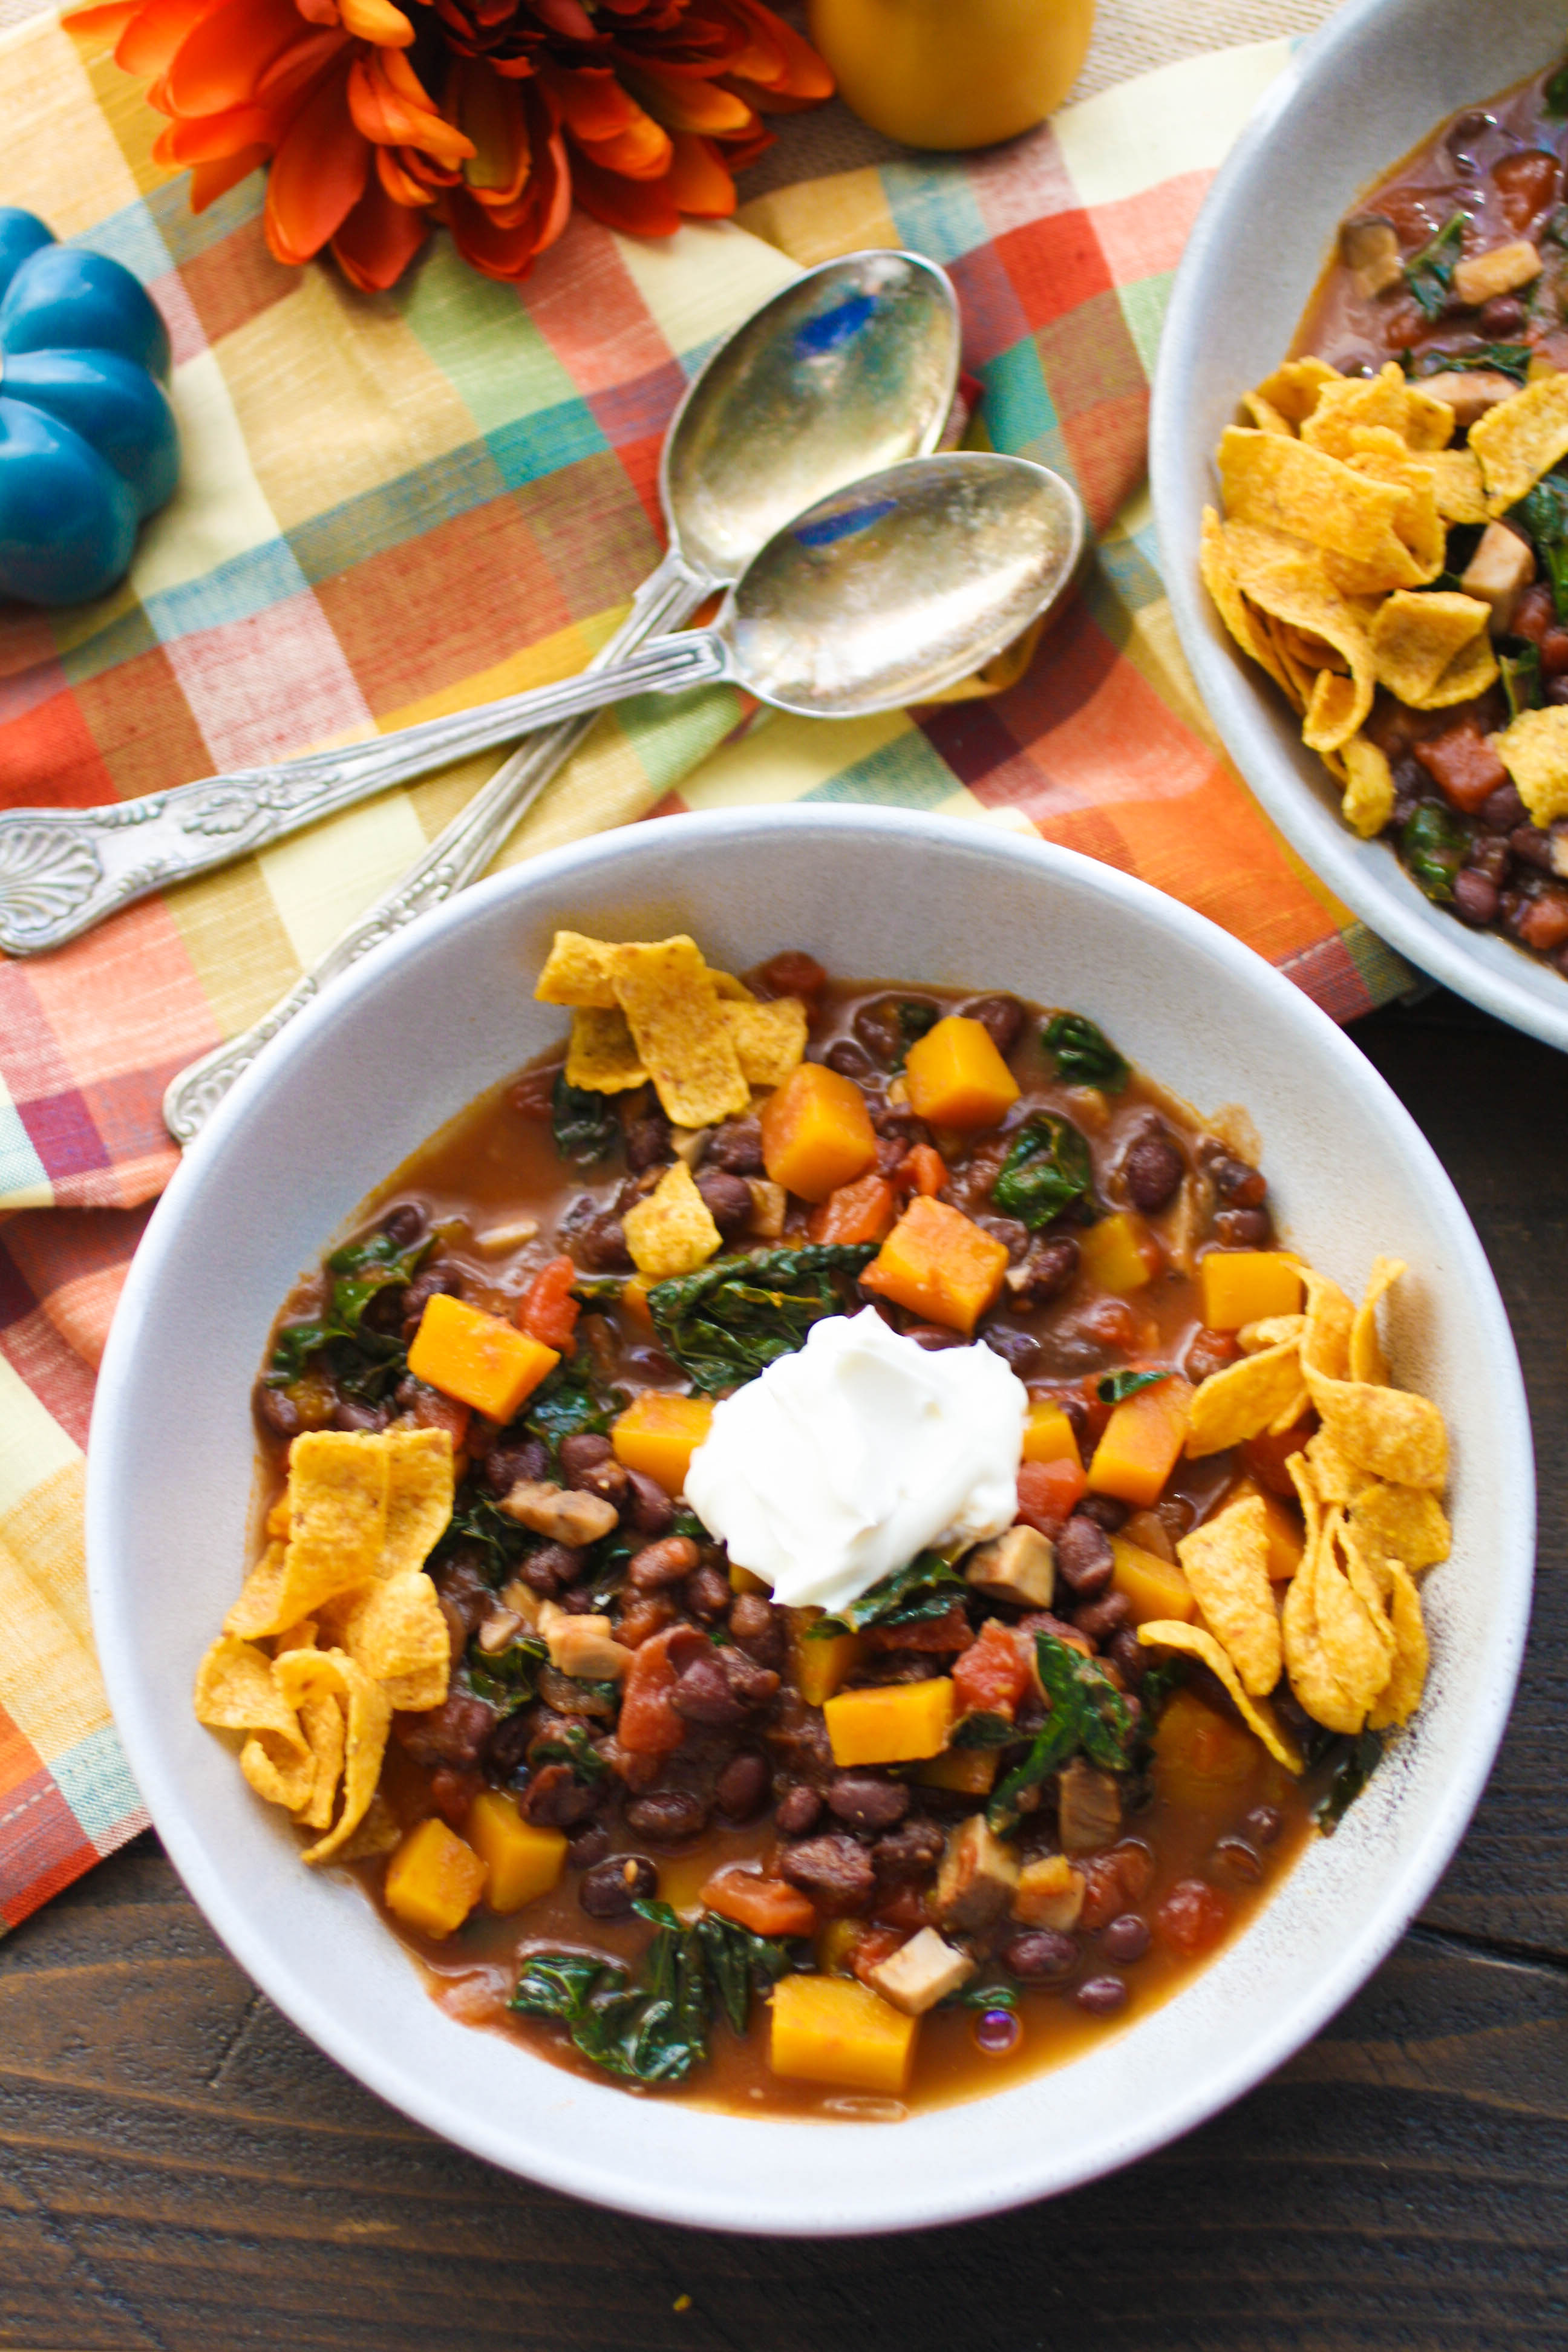 Grab a spoon and dig in to Butternut Squash and Black Bean Chili with Mushrooms & Kale. This recipe for Butternut Squash and Black Bean Chili with Mushrooms & Kale is ideal for Meatless Monday, or any night!